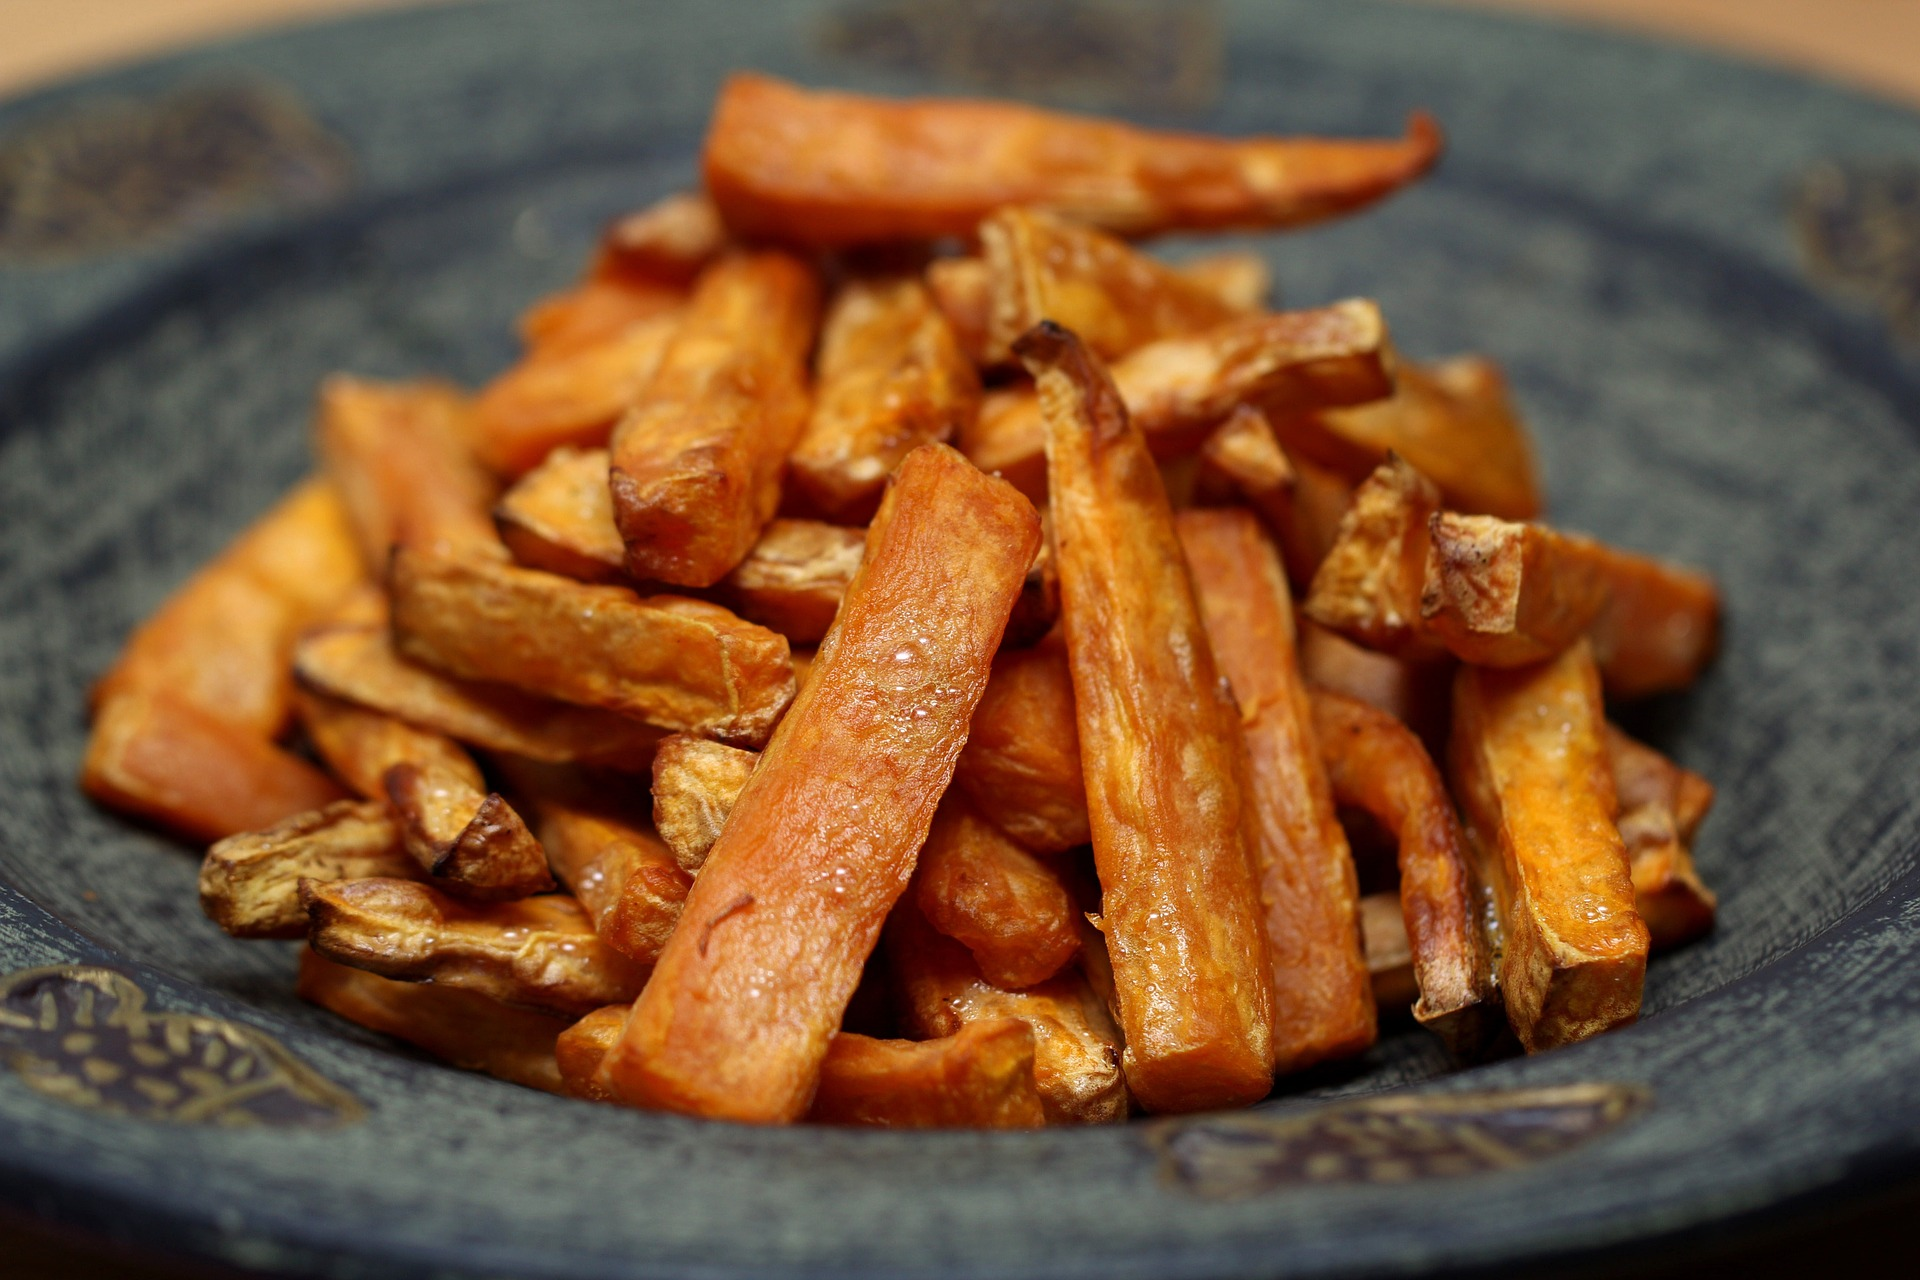 Sticks of roasted sweet potatoes piled on a gray bowl